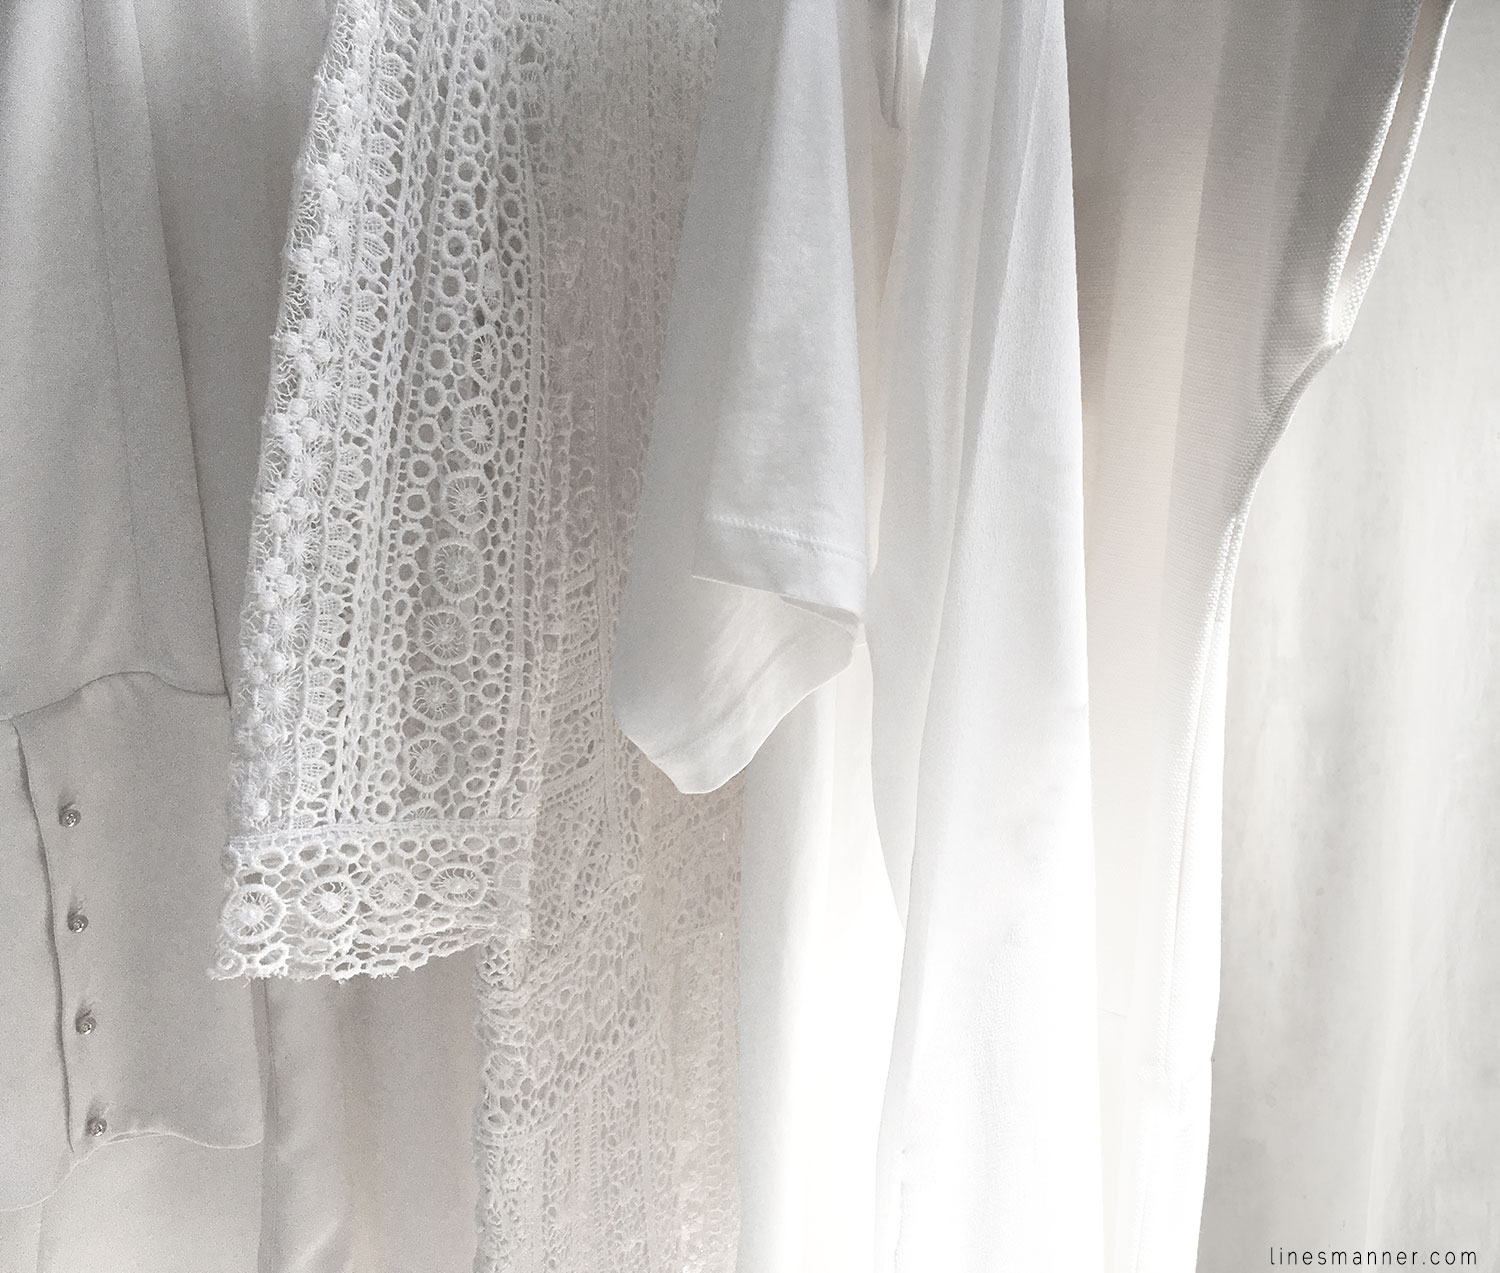 Lines-Manner-Immaculate-Whiteout-White-Off_White-Design-Structure-Clean-Fresh-Sleek-Fashion-Minimal-Wardrobe-Details-Pure-Simplicity-2